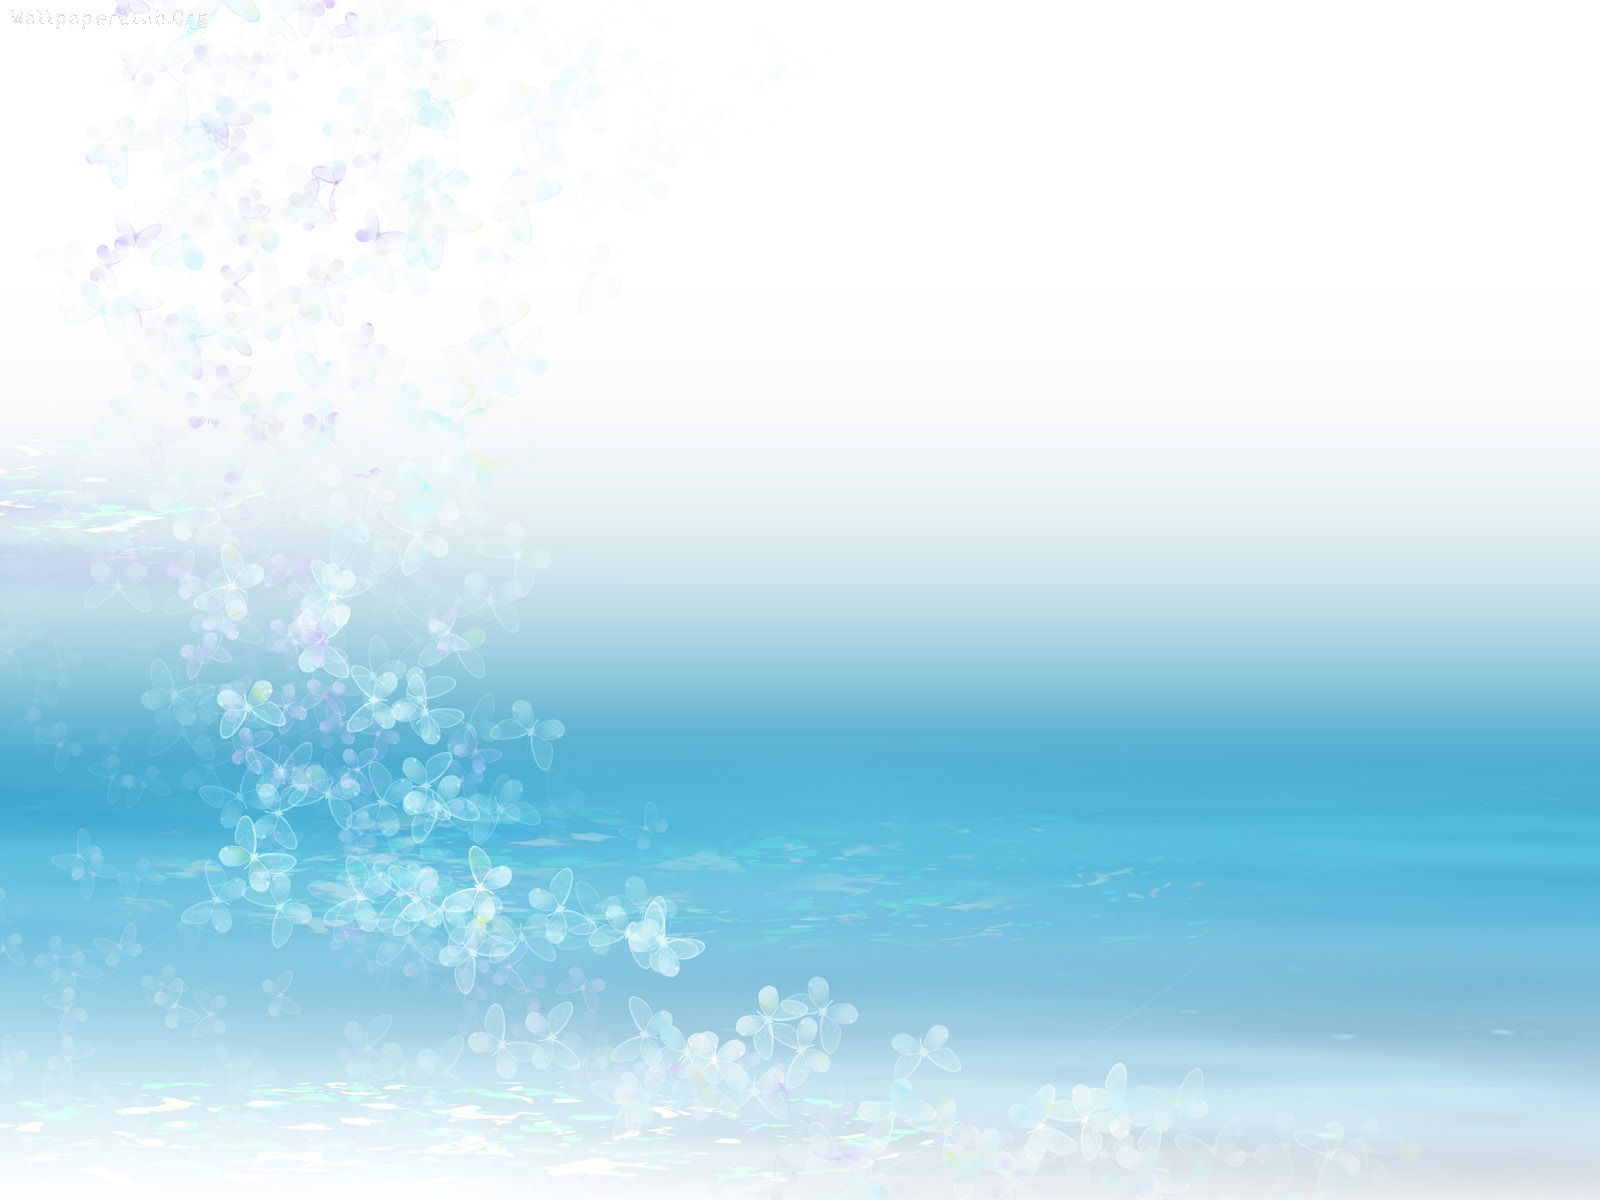 Wallpapers by Valdazzar 4 plain backgrounds 1 1600x1200